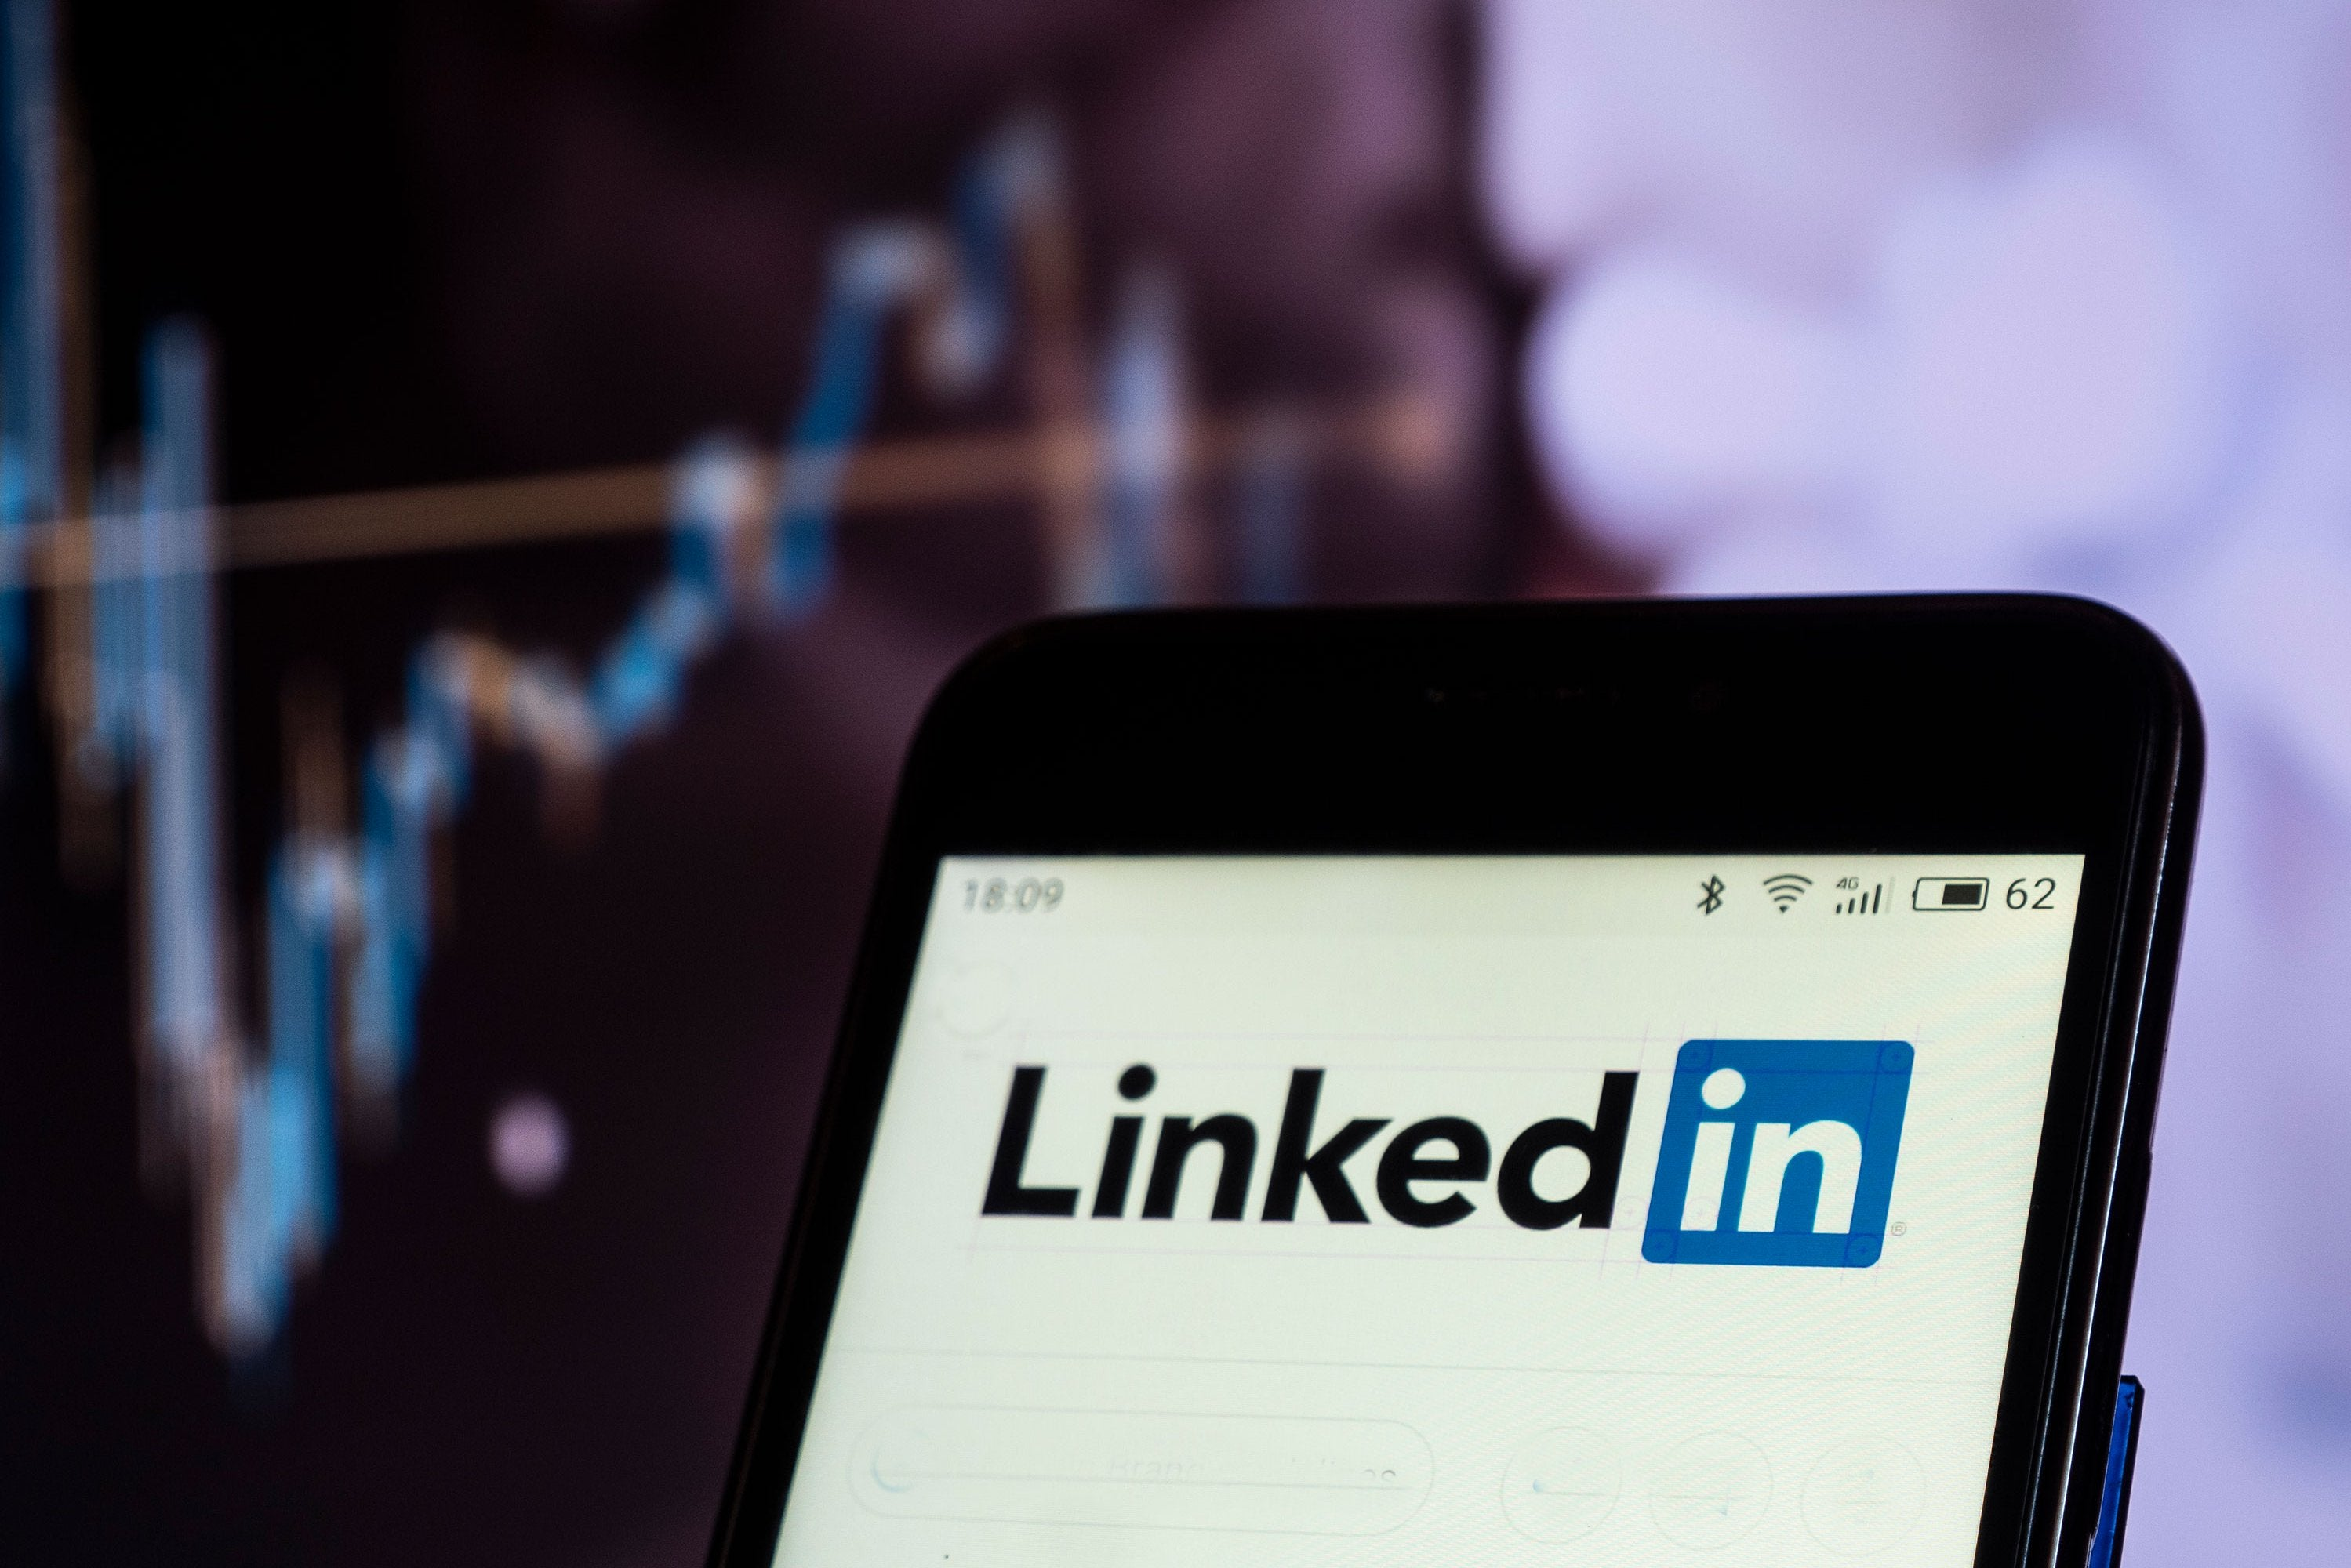 Entrepreneur Events: How LinkedIn Can Be a Revenue-Generating Machine for Your Business - Sep 18, 2019